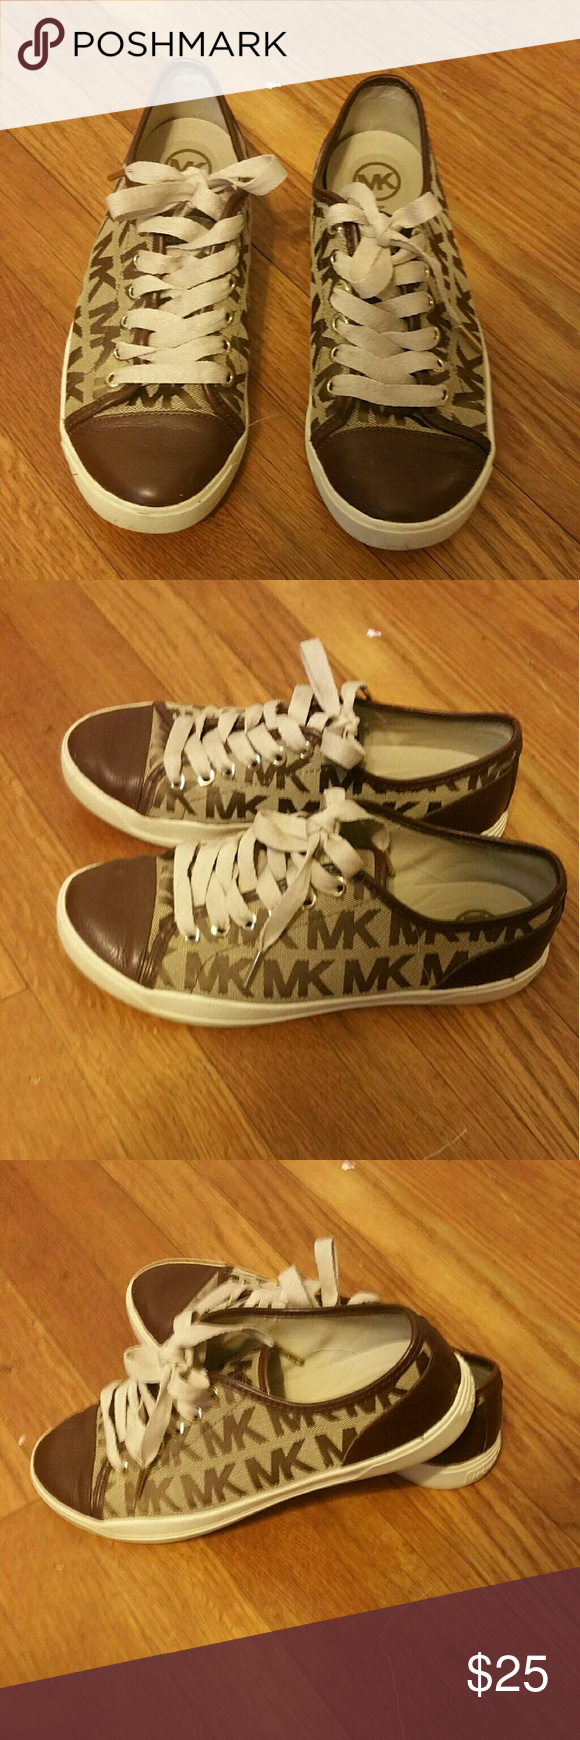 Michael Kors tennis shoes Gold thread laced shoe with brown MK logo Michael Kors Shoes Flats & Loafers